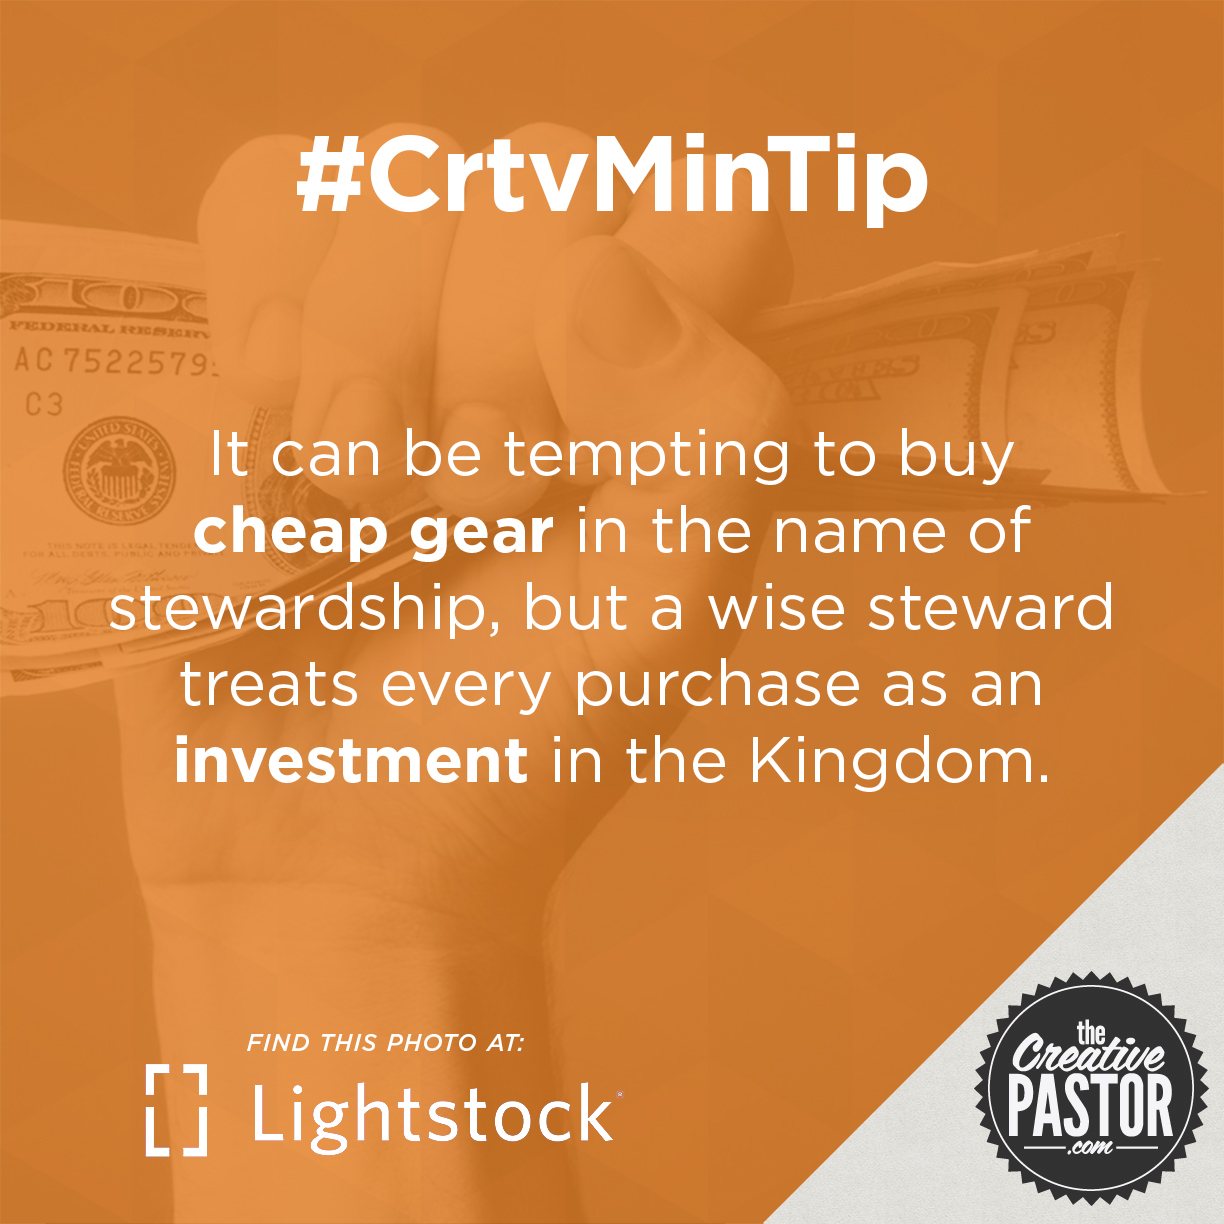 It can be tempting to buy cheap gear in the name of stewardship, but a wise steward treats every purchase as an investment in the Kingdom.